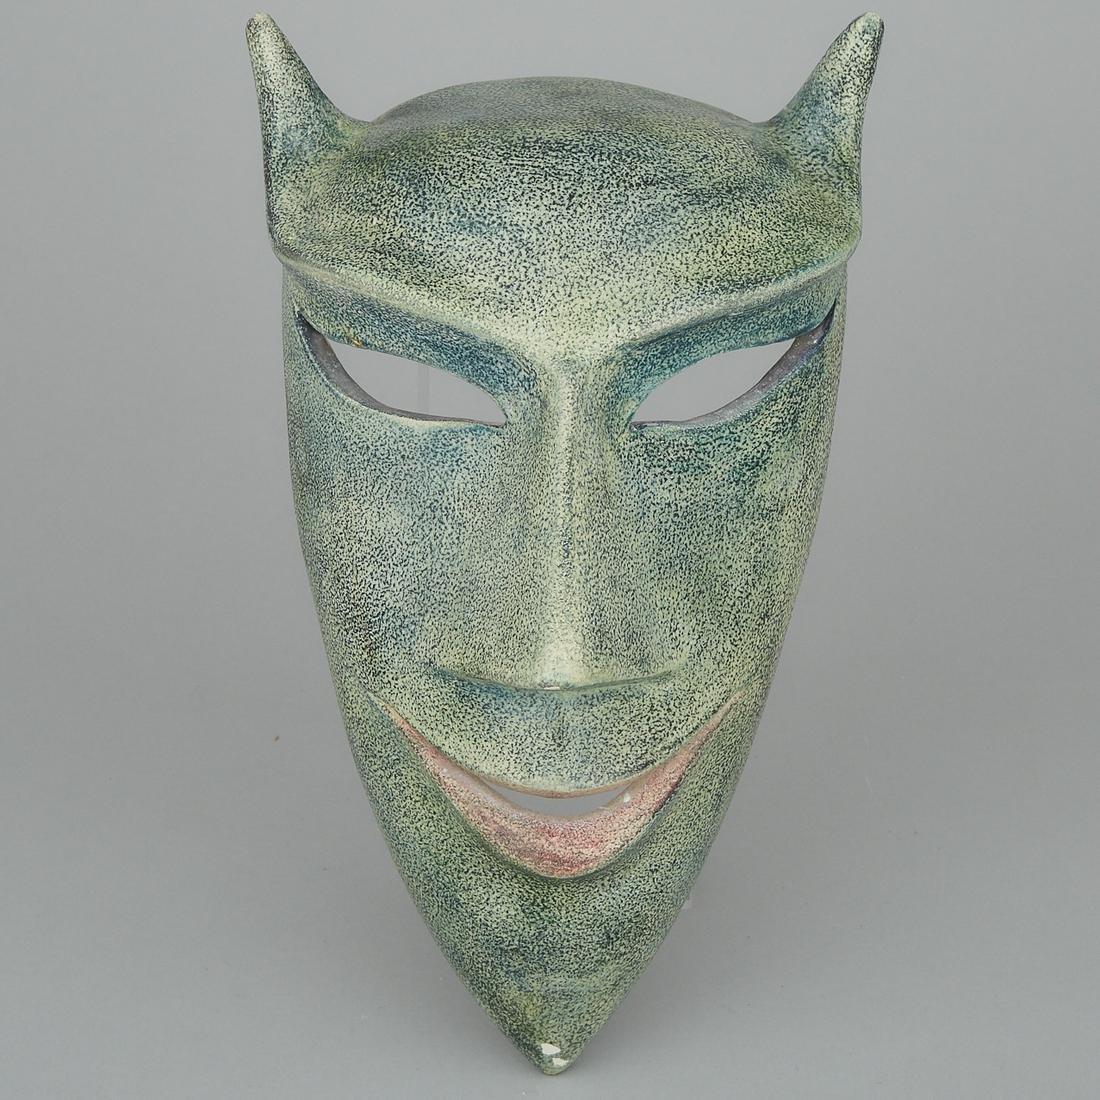 Brooklin Pottery Mask, Theo Harlander, c.1980